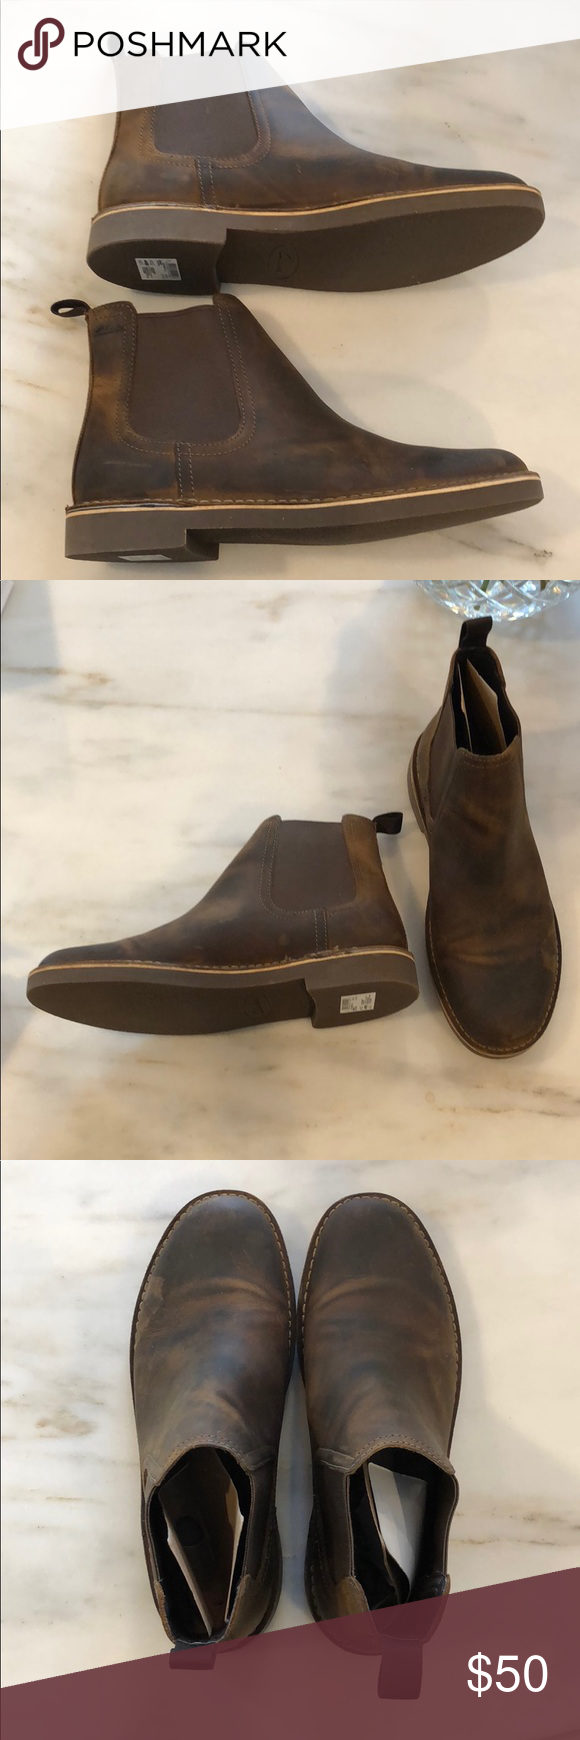 6928502e877 NWT Men's Clarks Bushacre Hill Chelsea Boots Brand new with box Clark's  Bushacre Hill Chelsea Boots in Beeswax color Bought on Amazon for $80 Clarks  Shoes ...